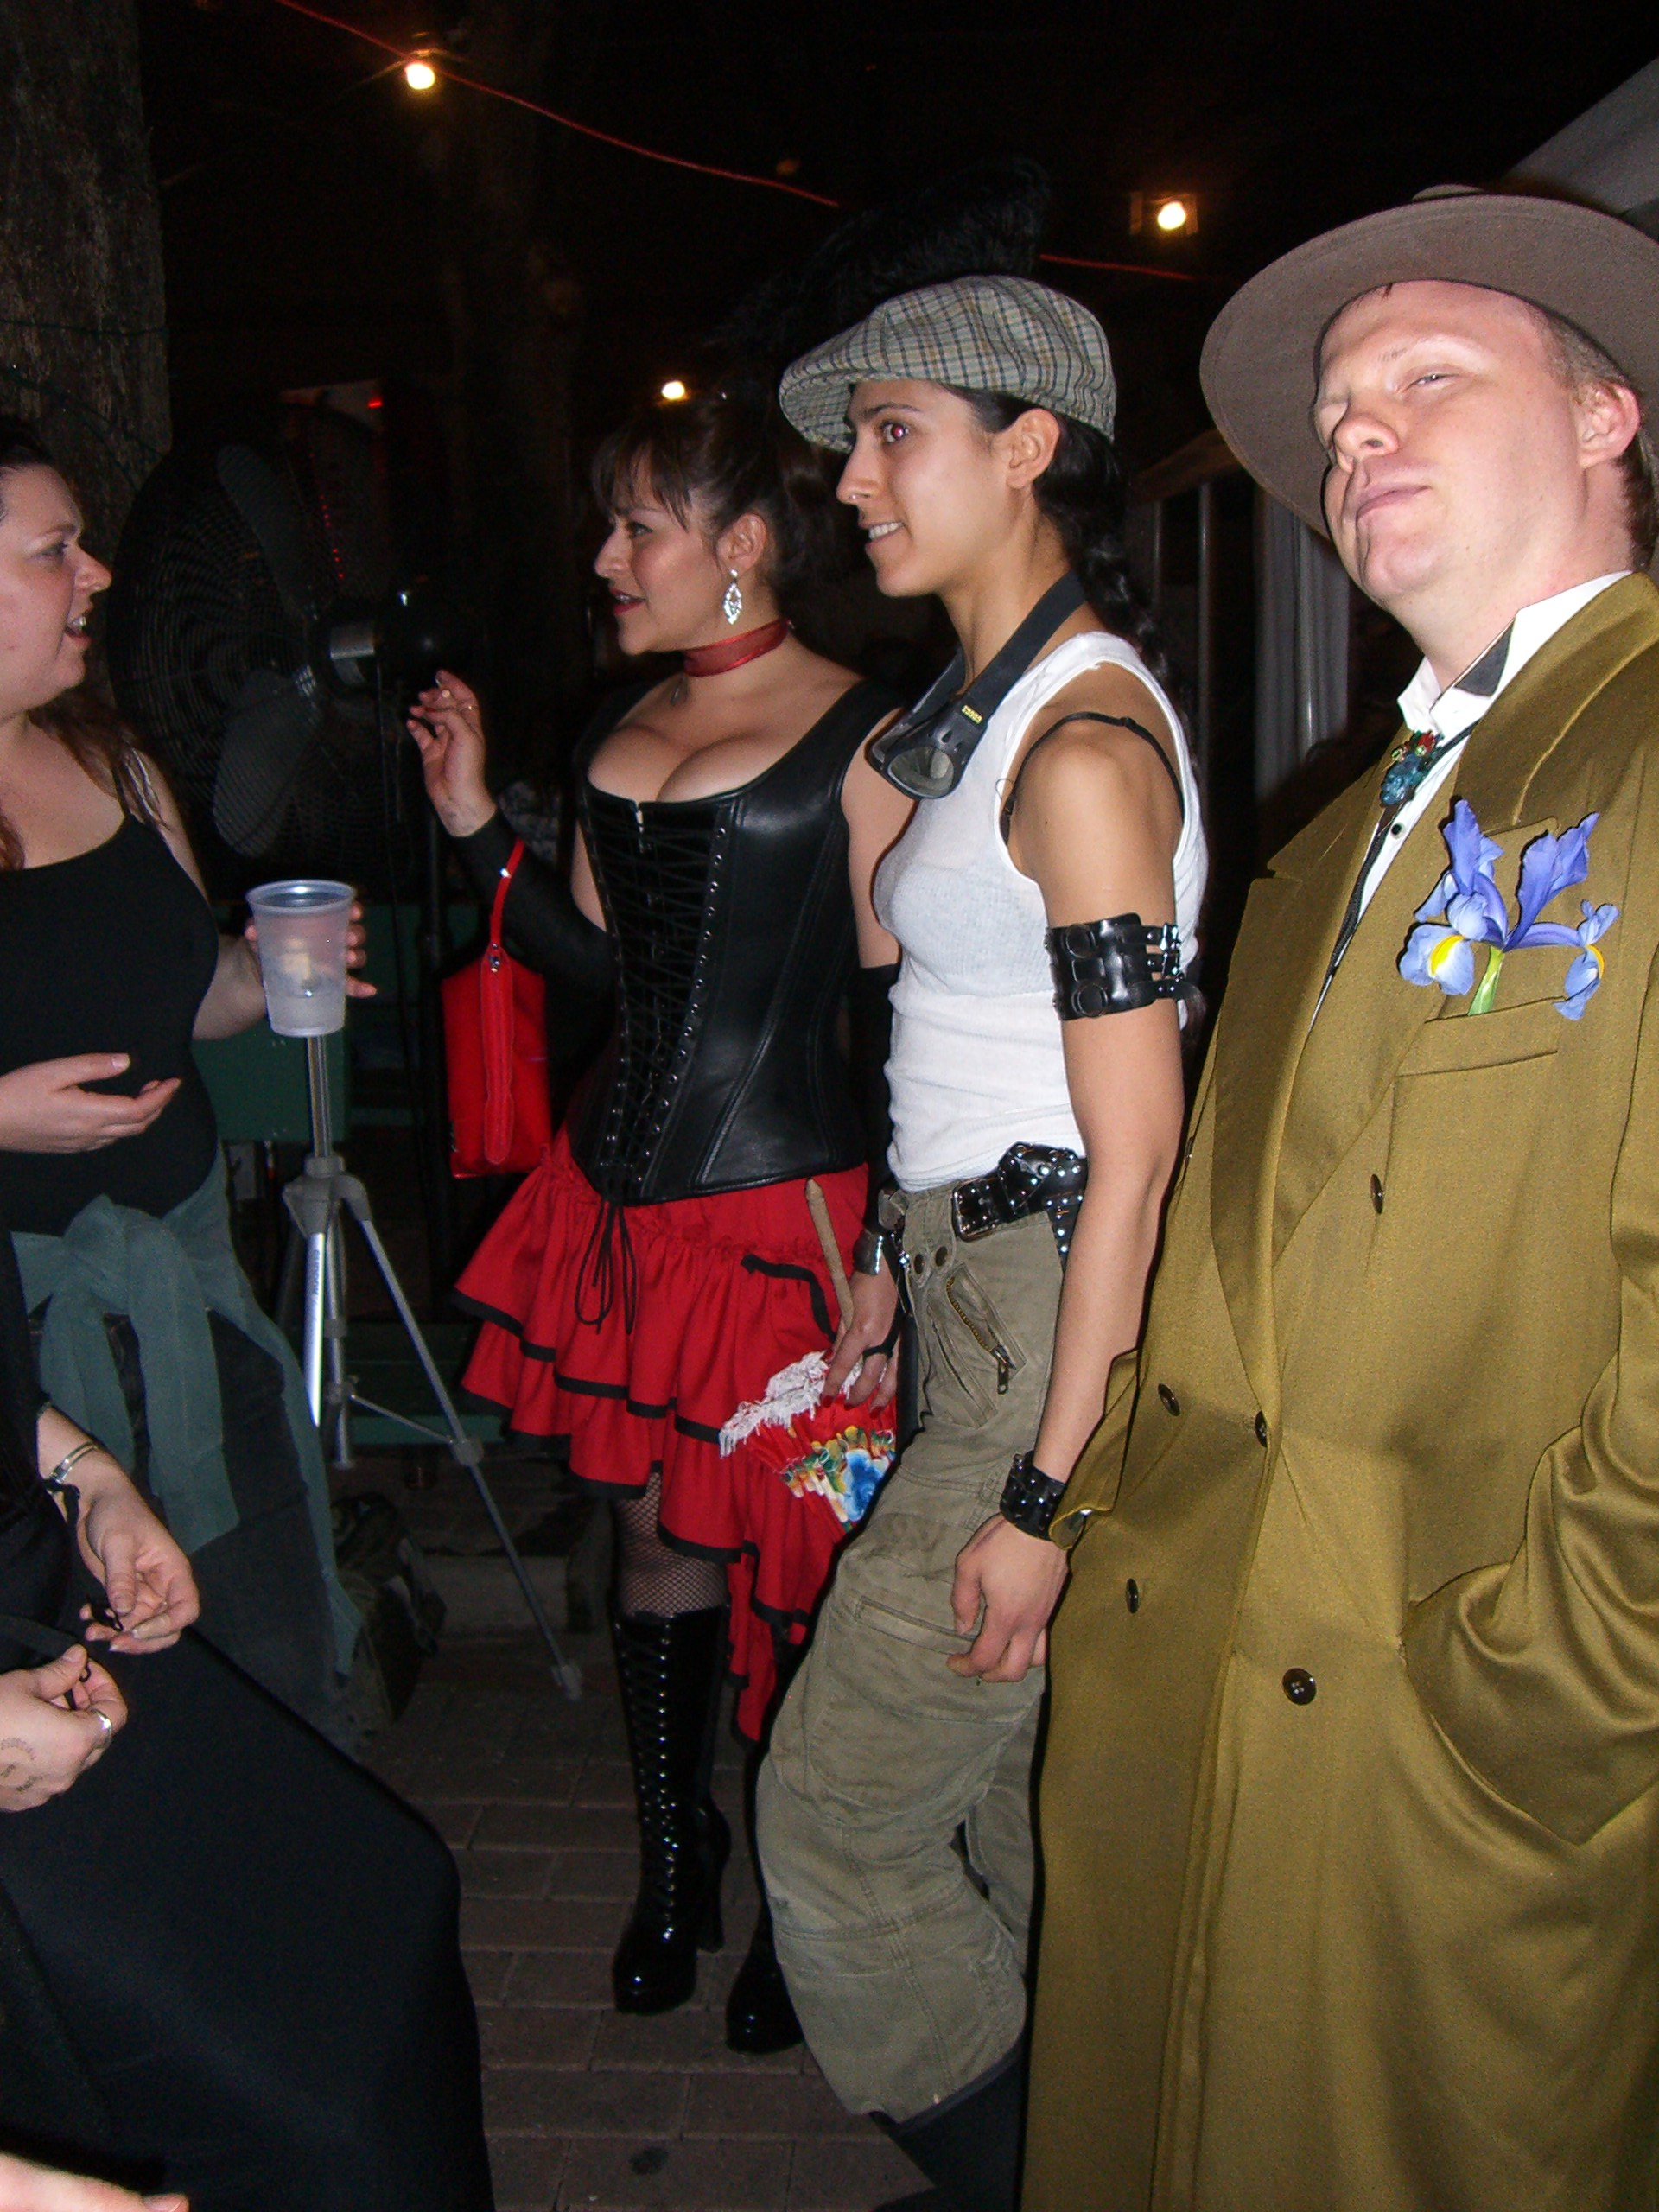 Three partygoers at the SXSW 2007 steampunk party